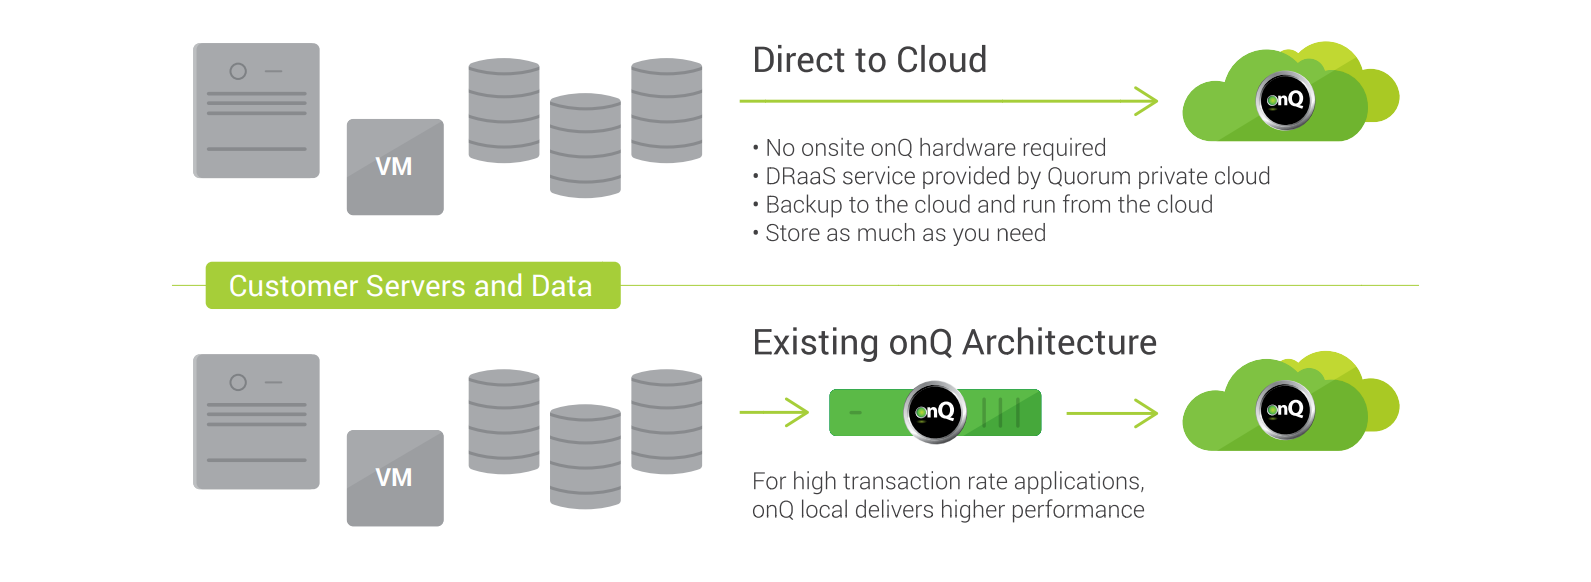 Direct to Cloud Overview Graphic